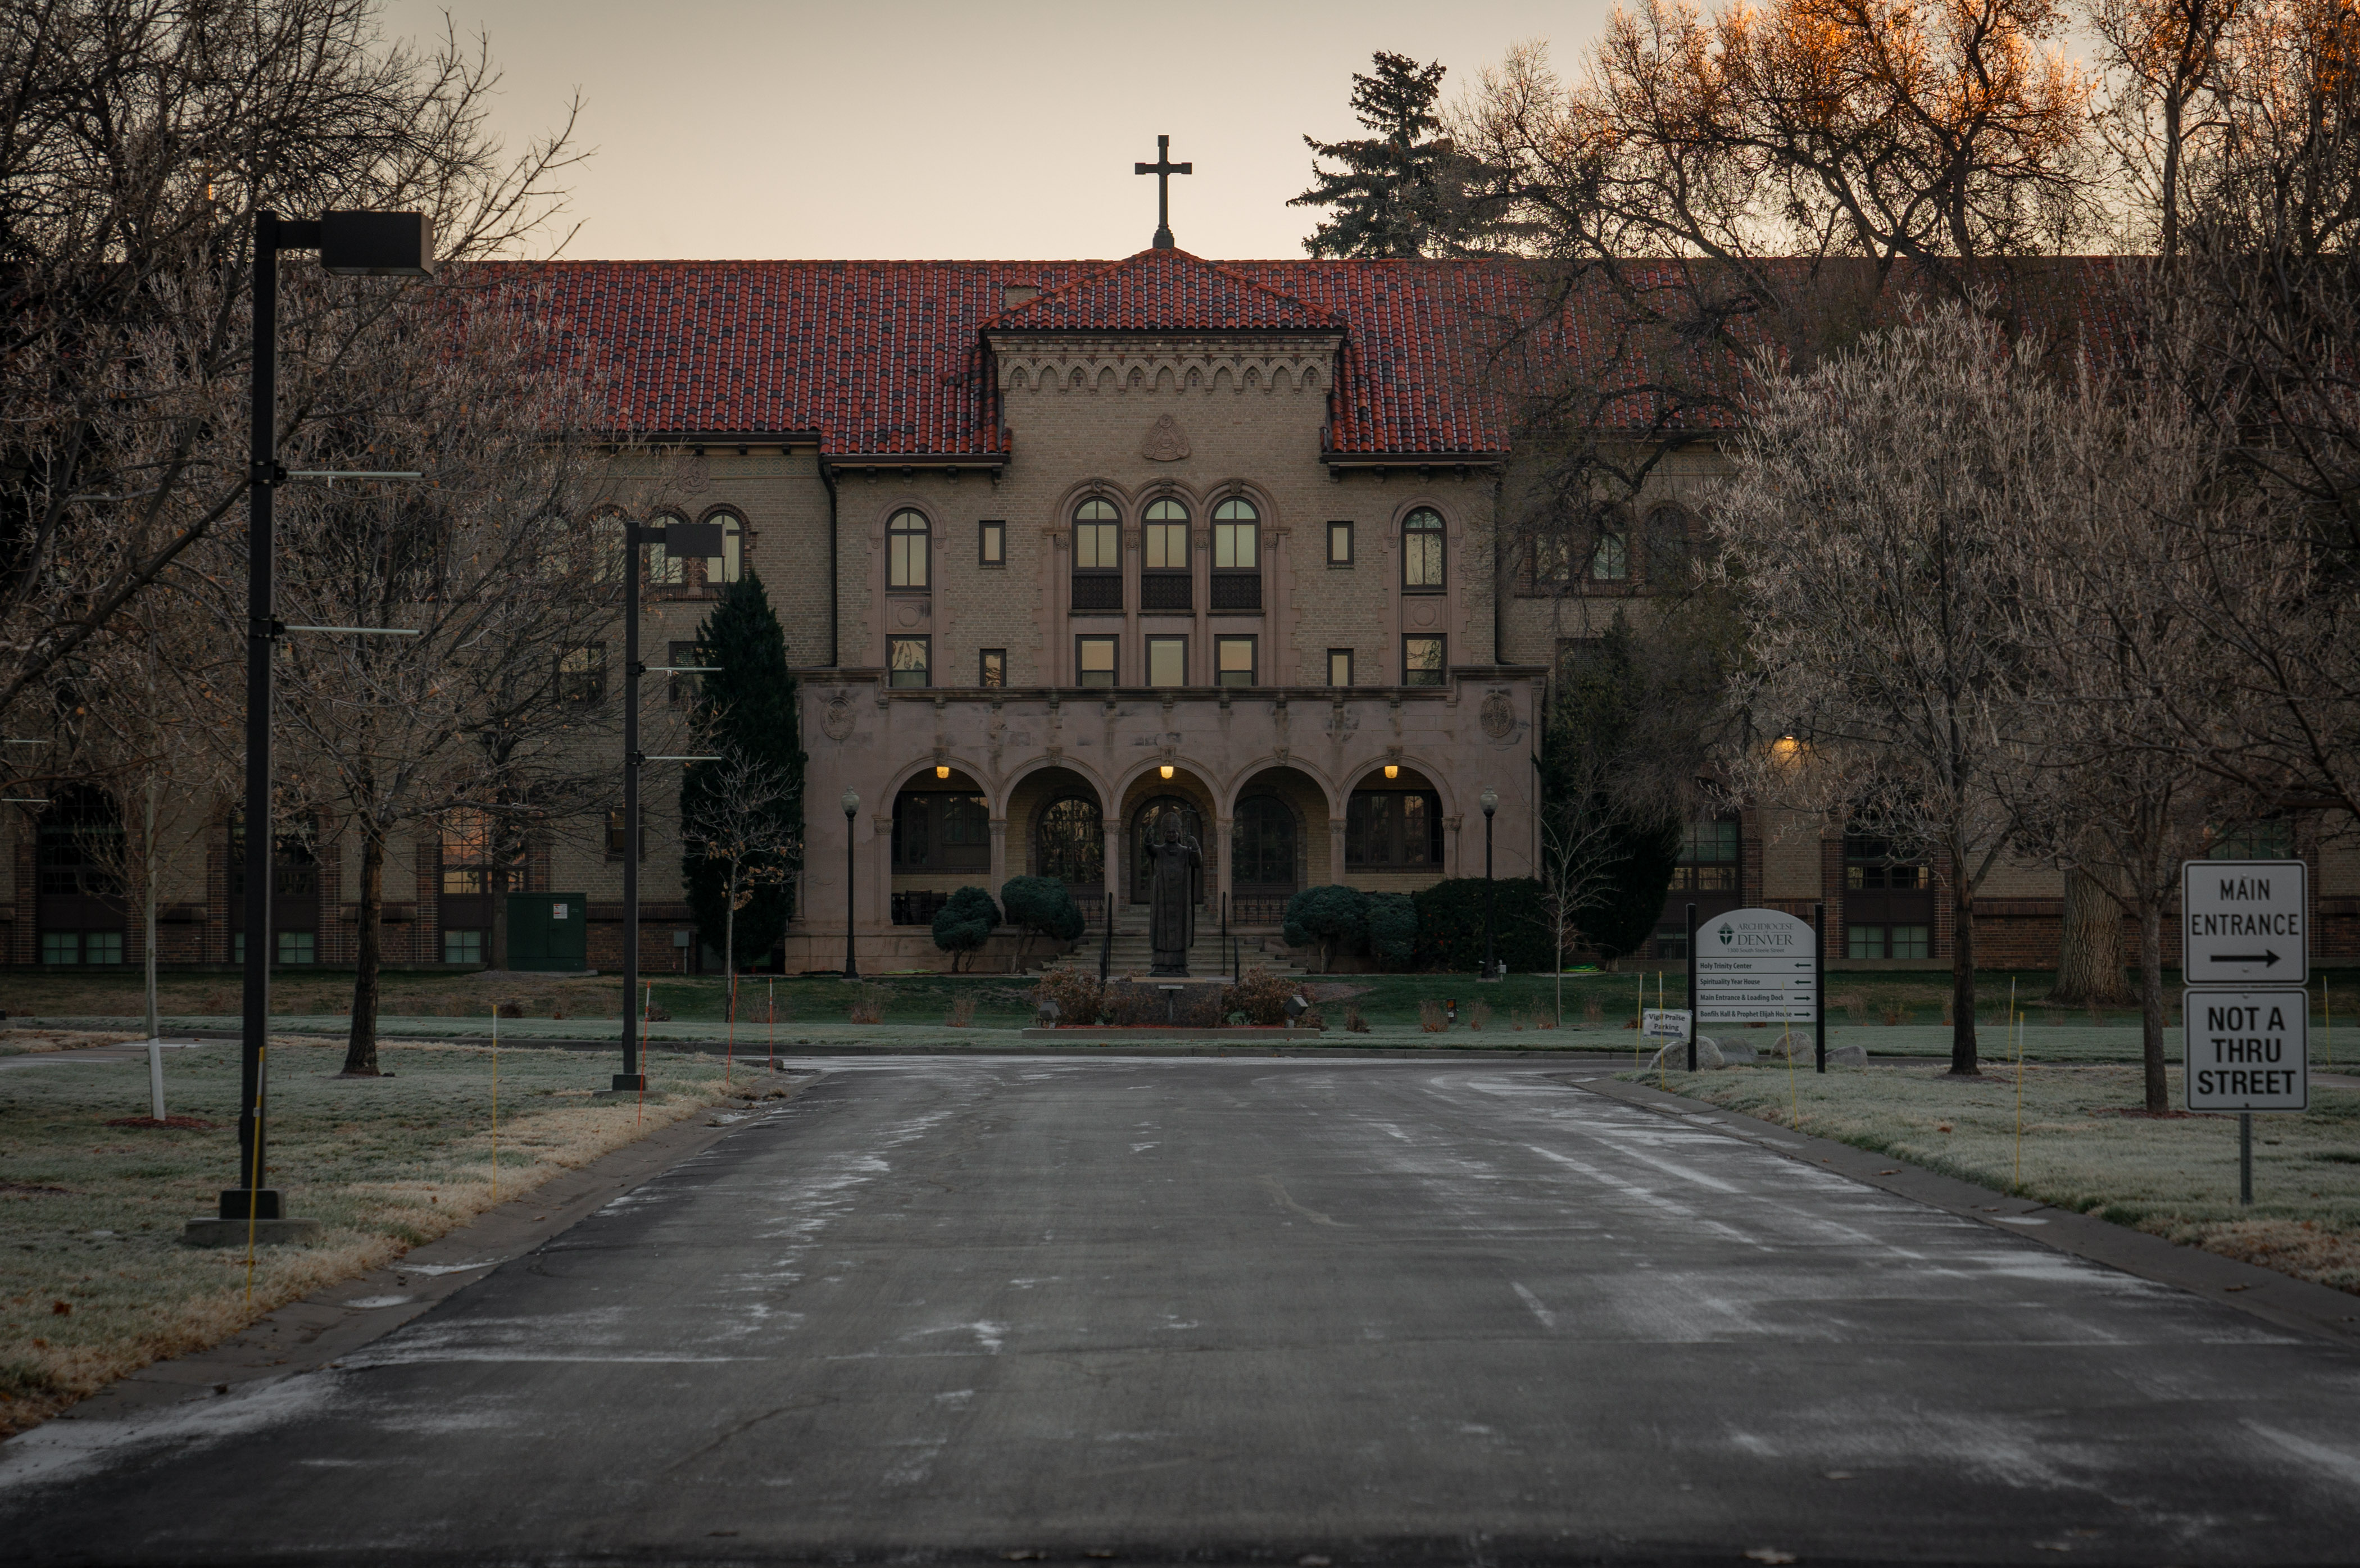 The St. John Vianney Seminary and the archdiocese are headquartered at the St. John Paul II Center for the New Evangelization in the Cory-Merrill neighborhood of Denver, Colo.